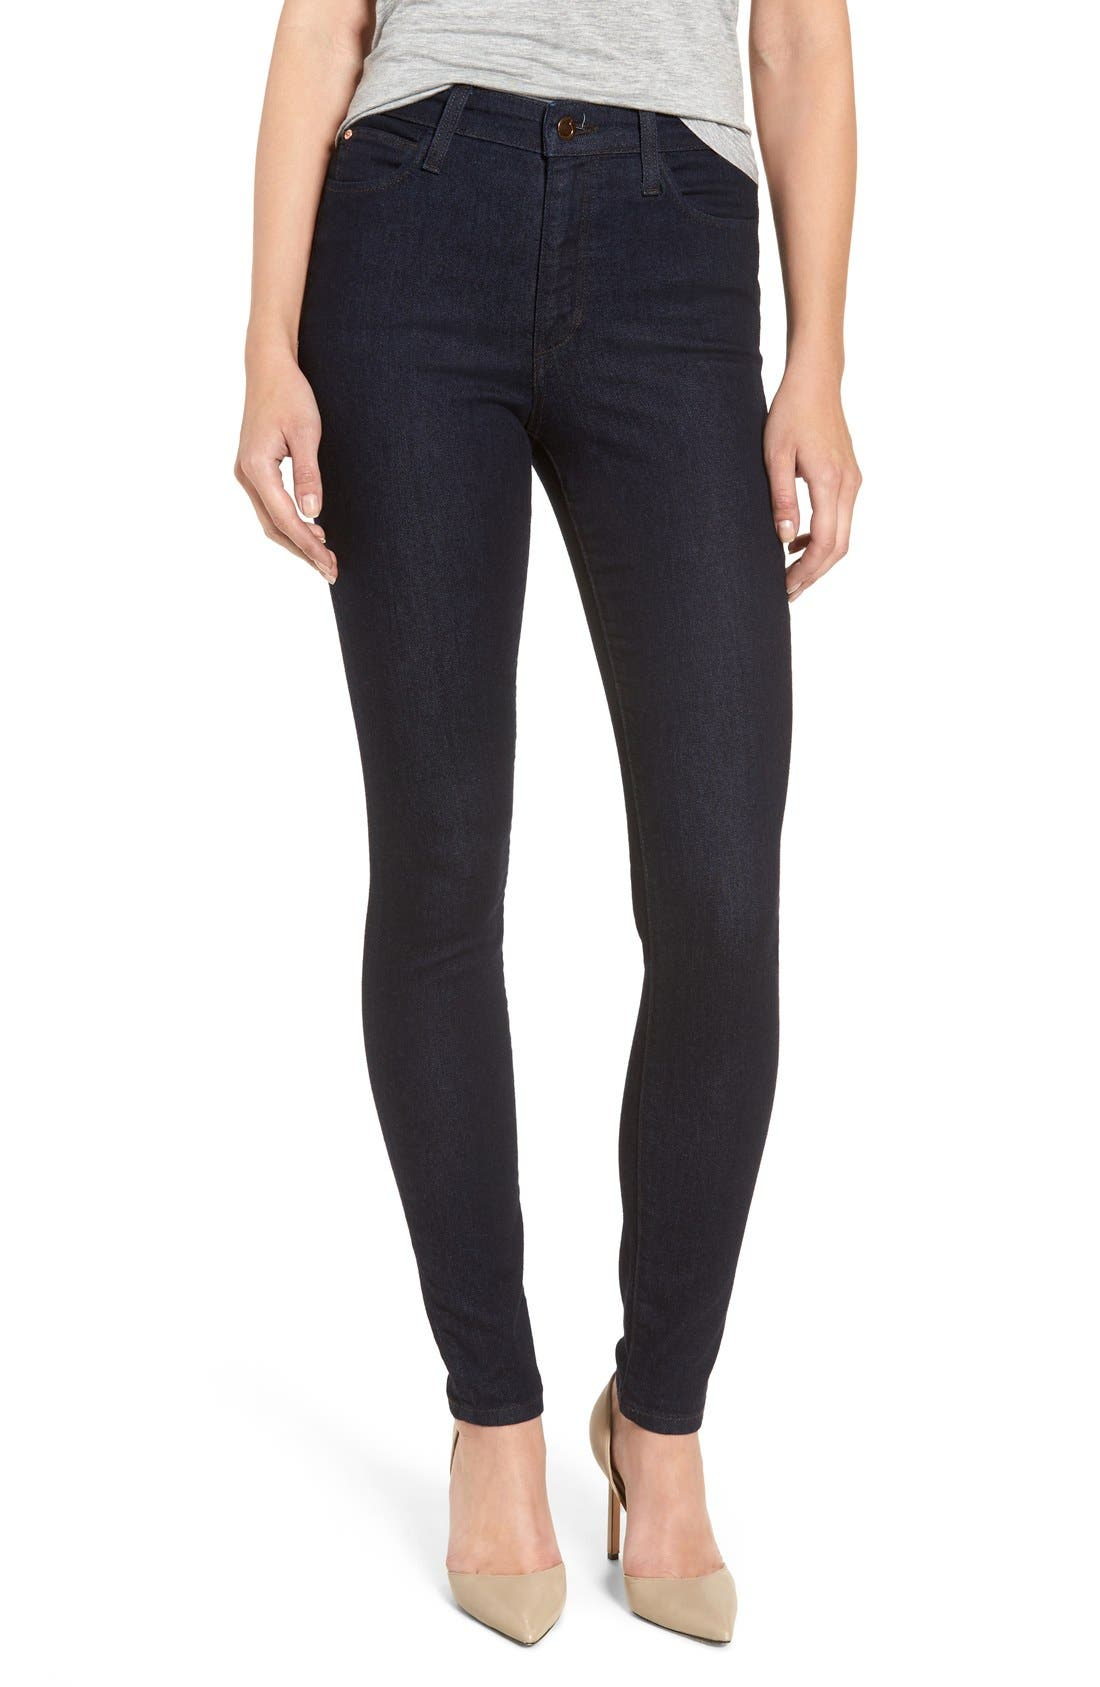 JOE'S Joes Flawless - Charlie High Waist Skinny